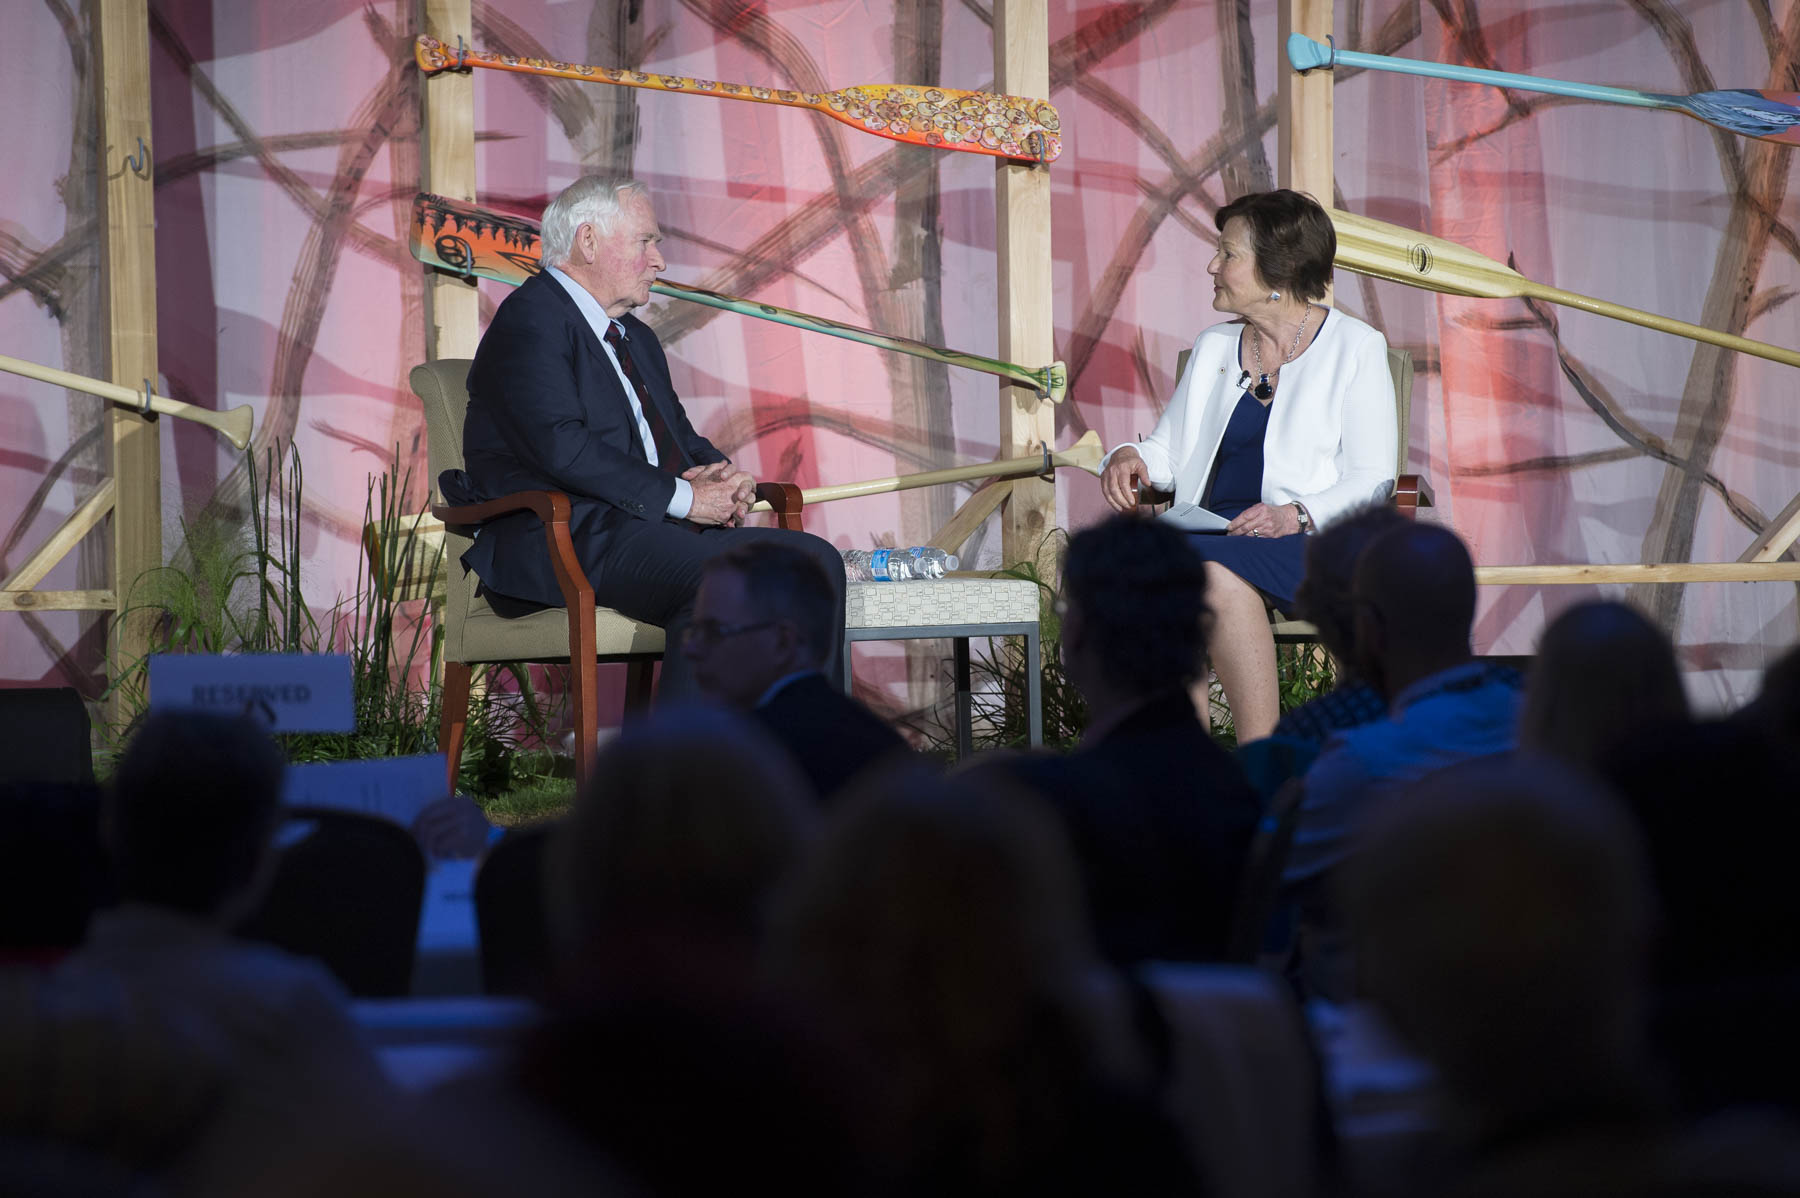 Following his remarks, His Excellency and Sandra Richardson, CEO of Victoria Foundation, had an on-stage conversation about the importance of community foundations.